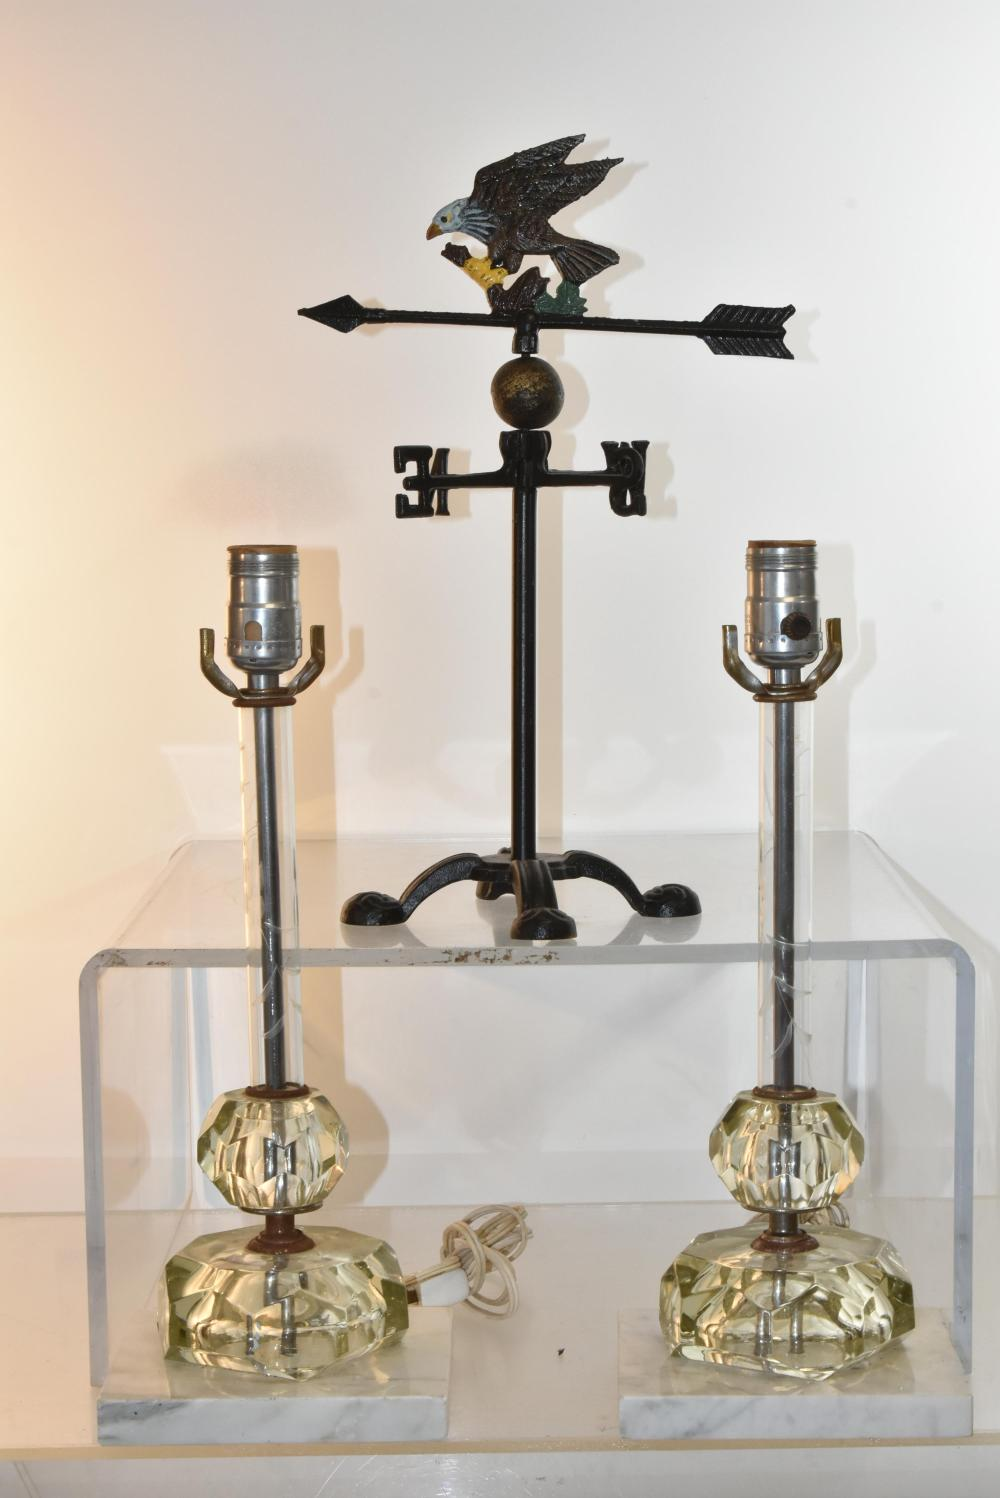 Italian Lamps and a Weather Vane